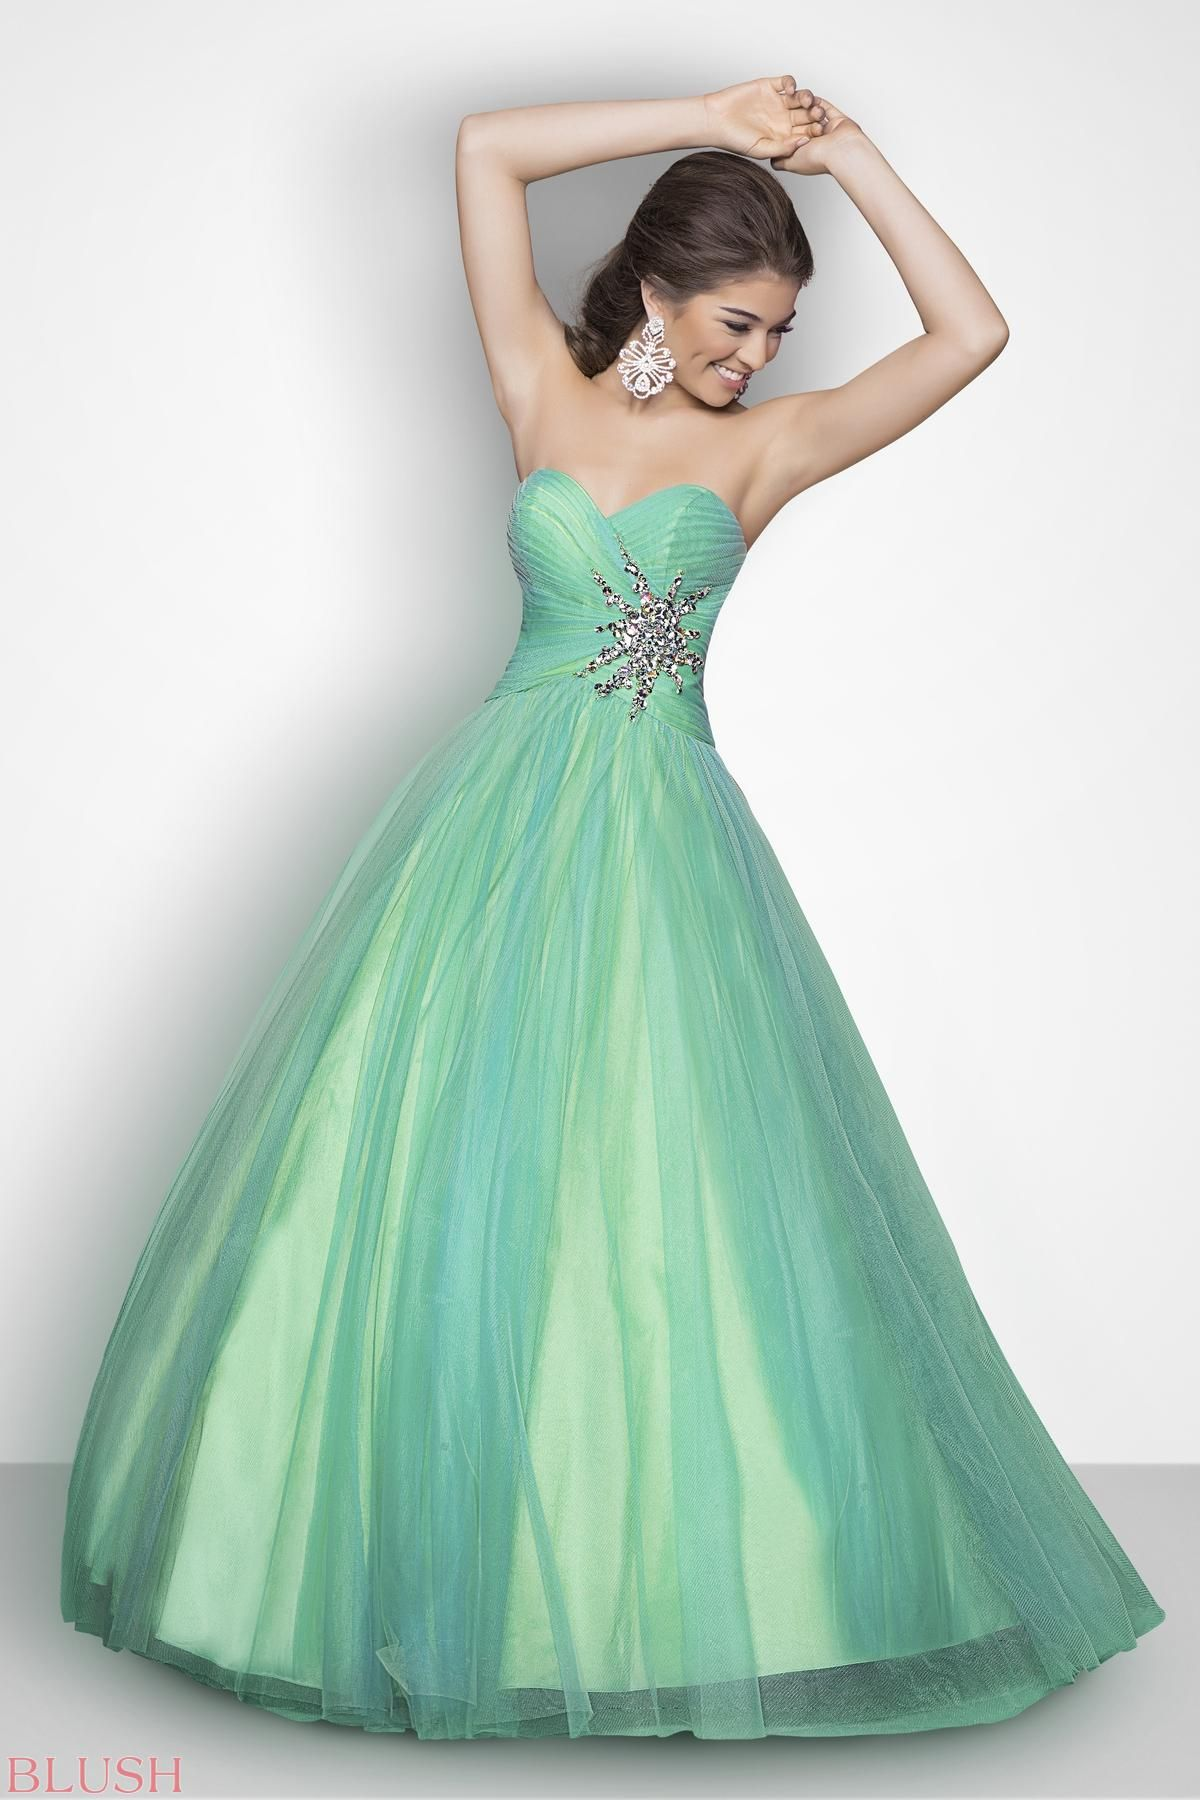 Elegant ballgown prom dress! This irridescent gown rocks with a ...